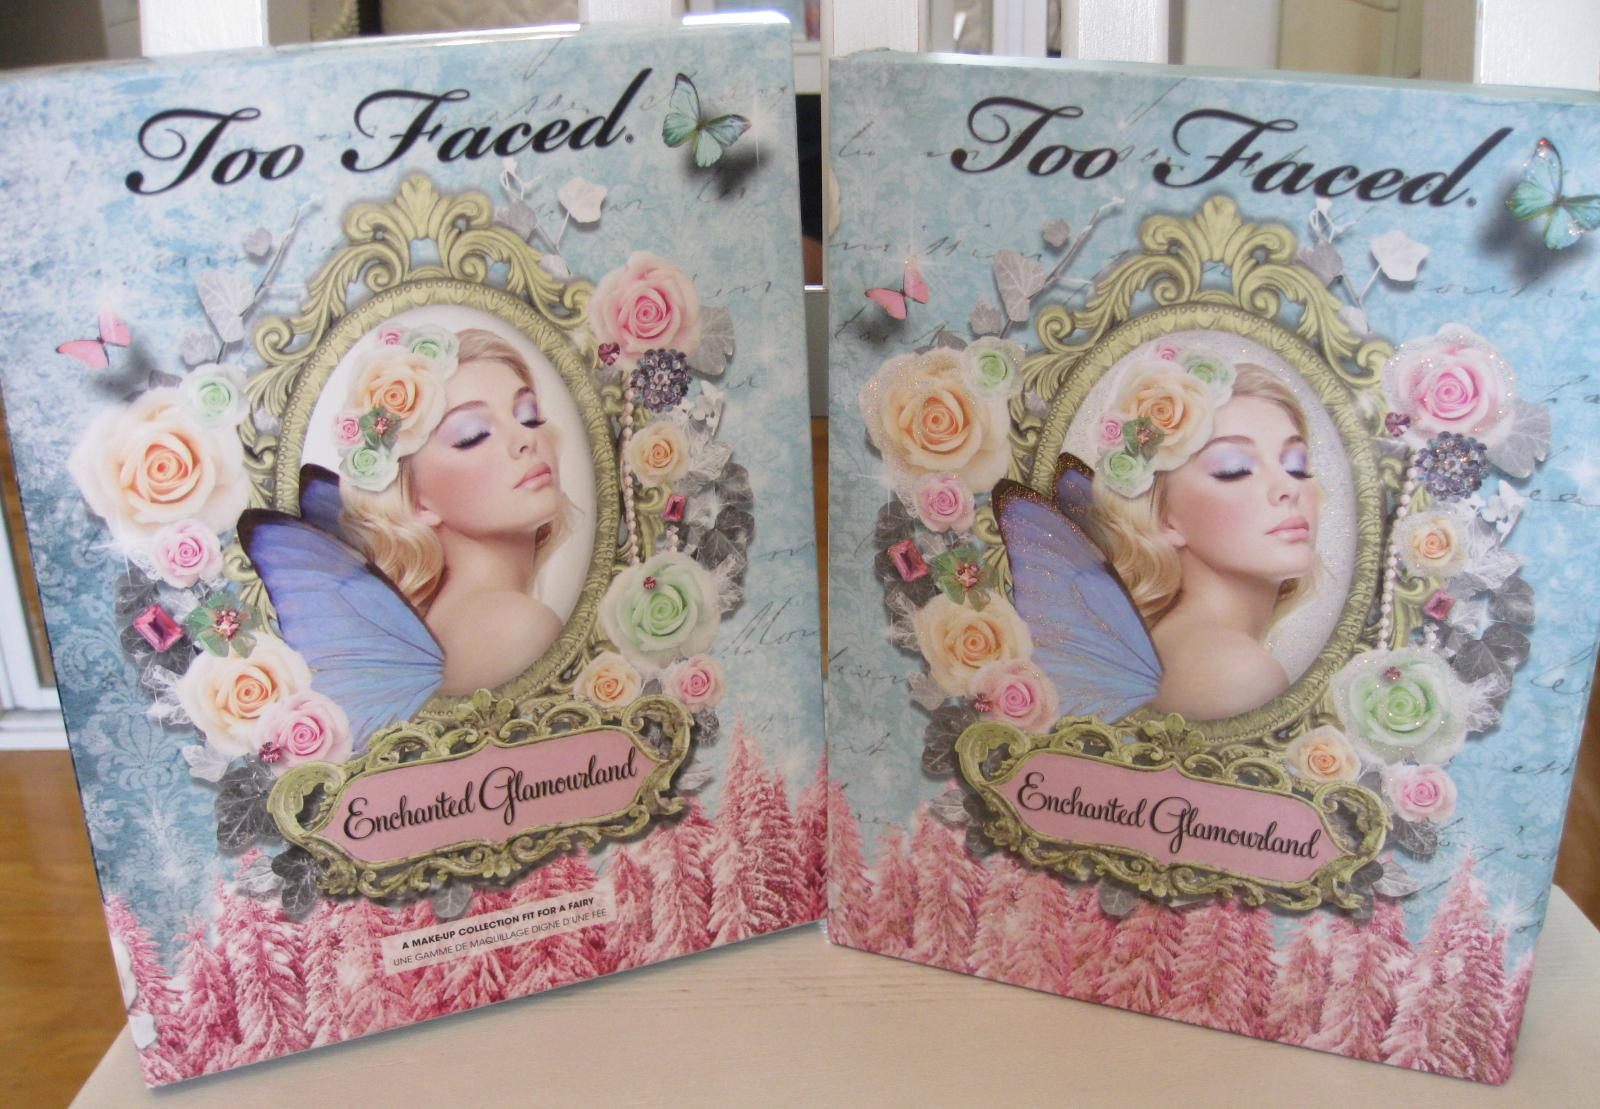 Too Faced Enchanted Glamourland: Vivid, vibrant, playful